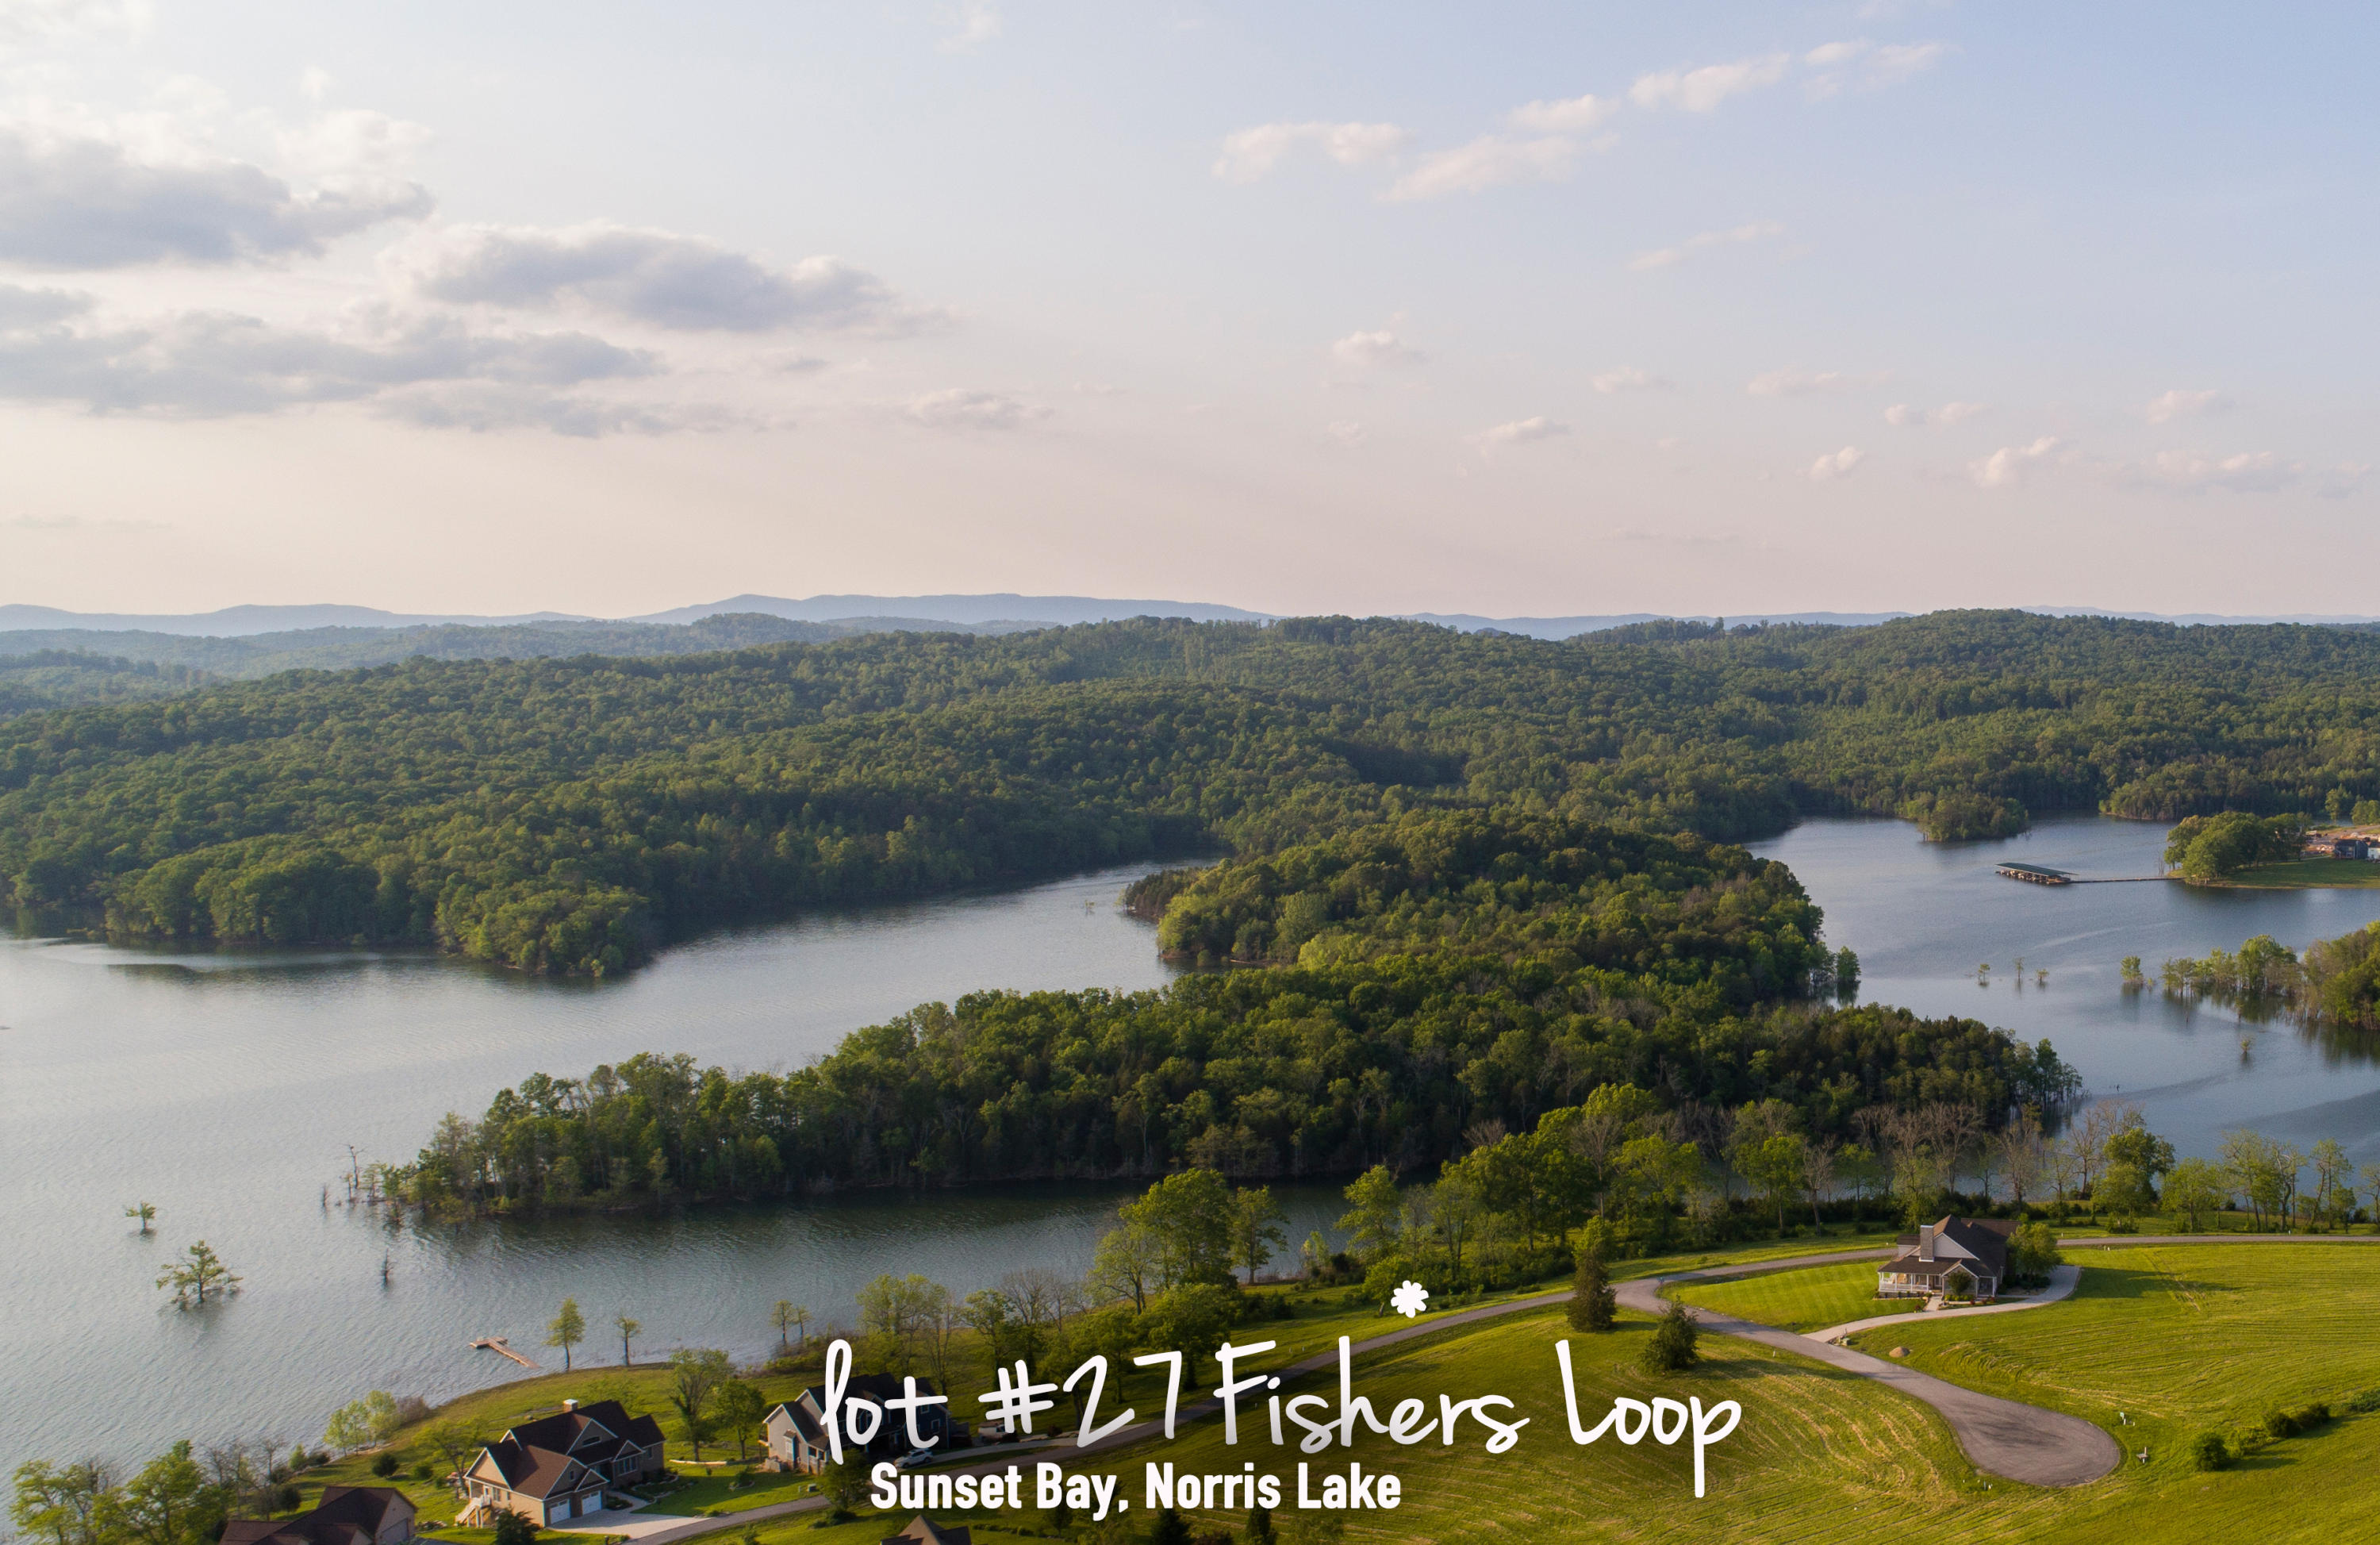 Lot 27 Fishers Loop: